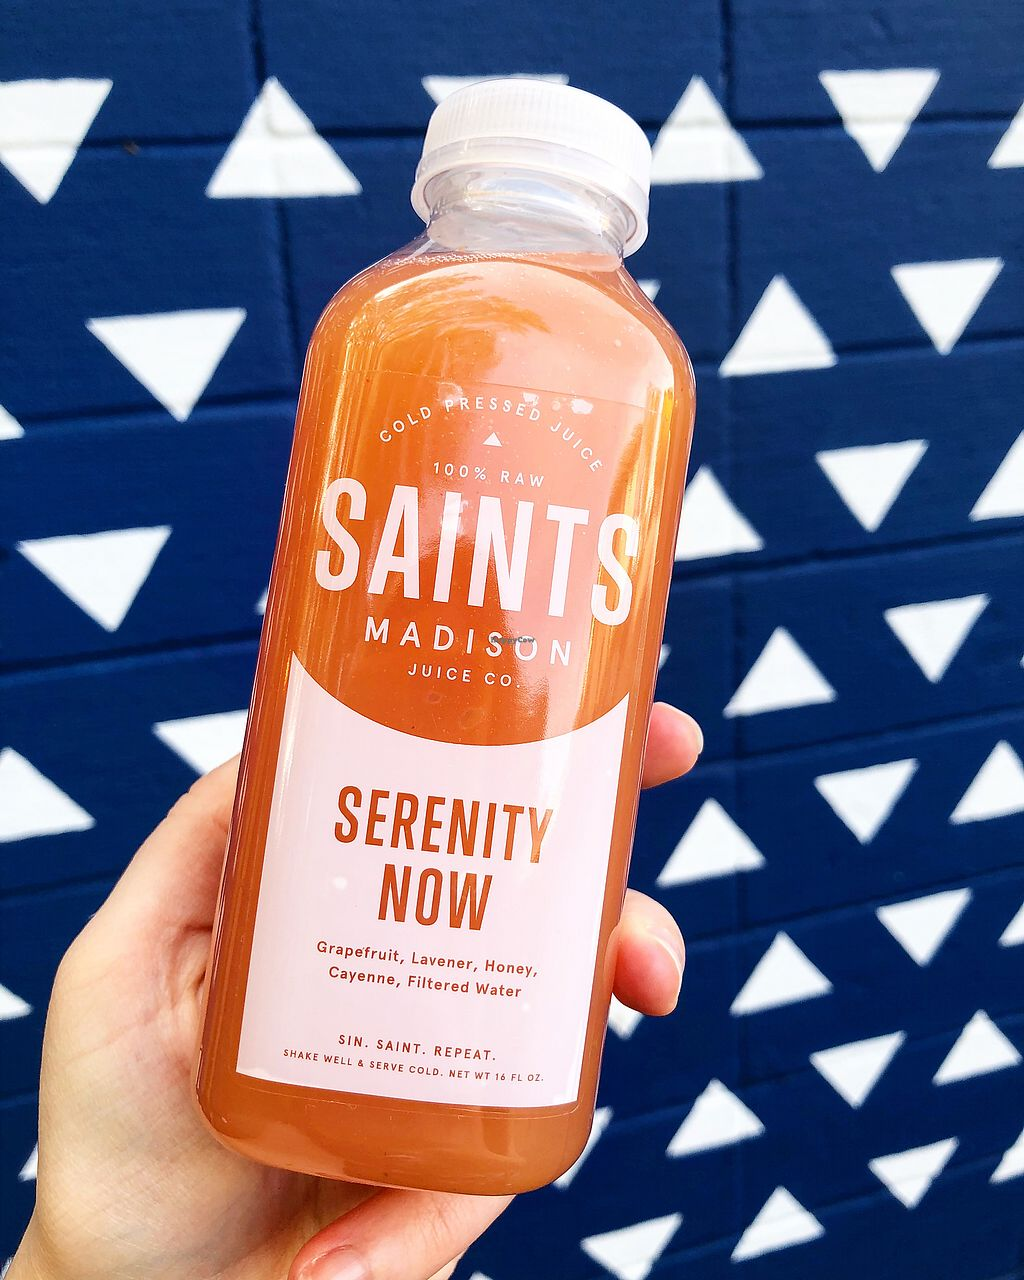 """Photo of Saints Madison Juice Co  by <a href=""""/members/profile/ErinLowry"""">ErinLowry</a> <br/>Serenity Now by Saints Madison <br/> March 13, 2018  - <a href='/contact/abuse/image/100708/370305'>Report</a>"""